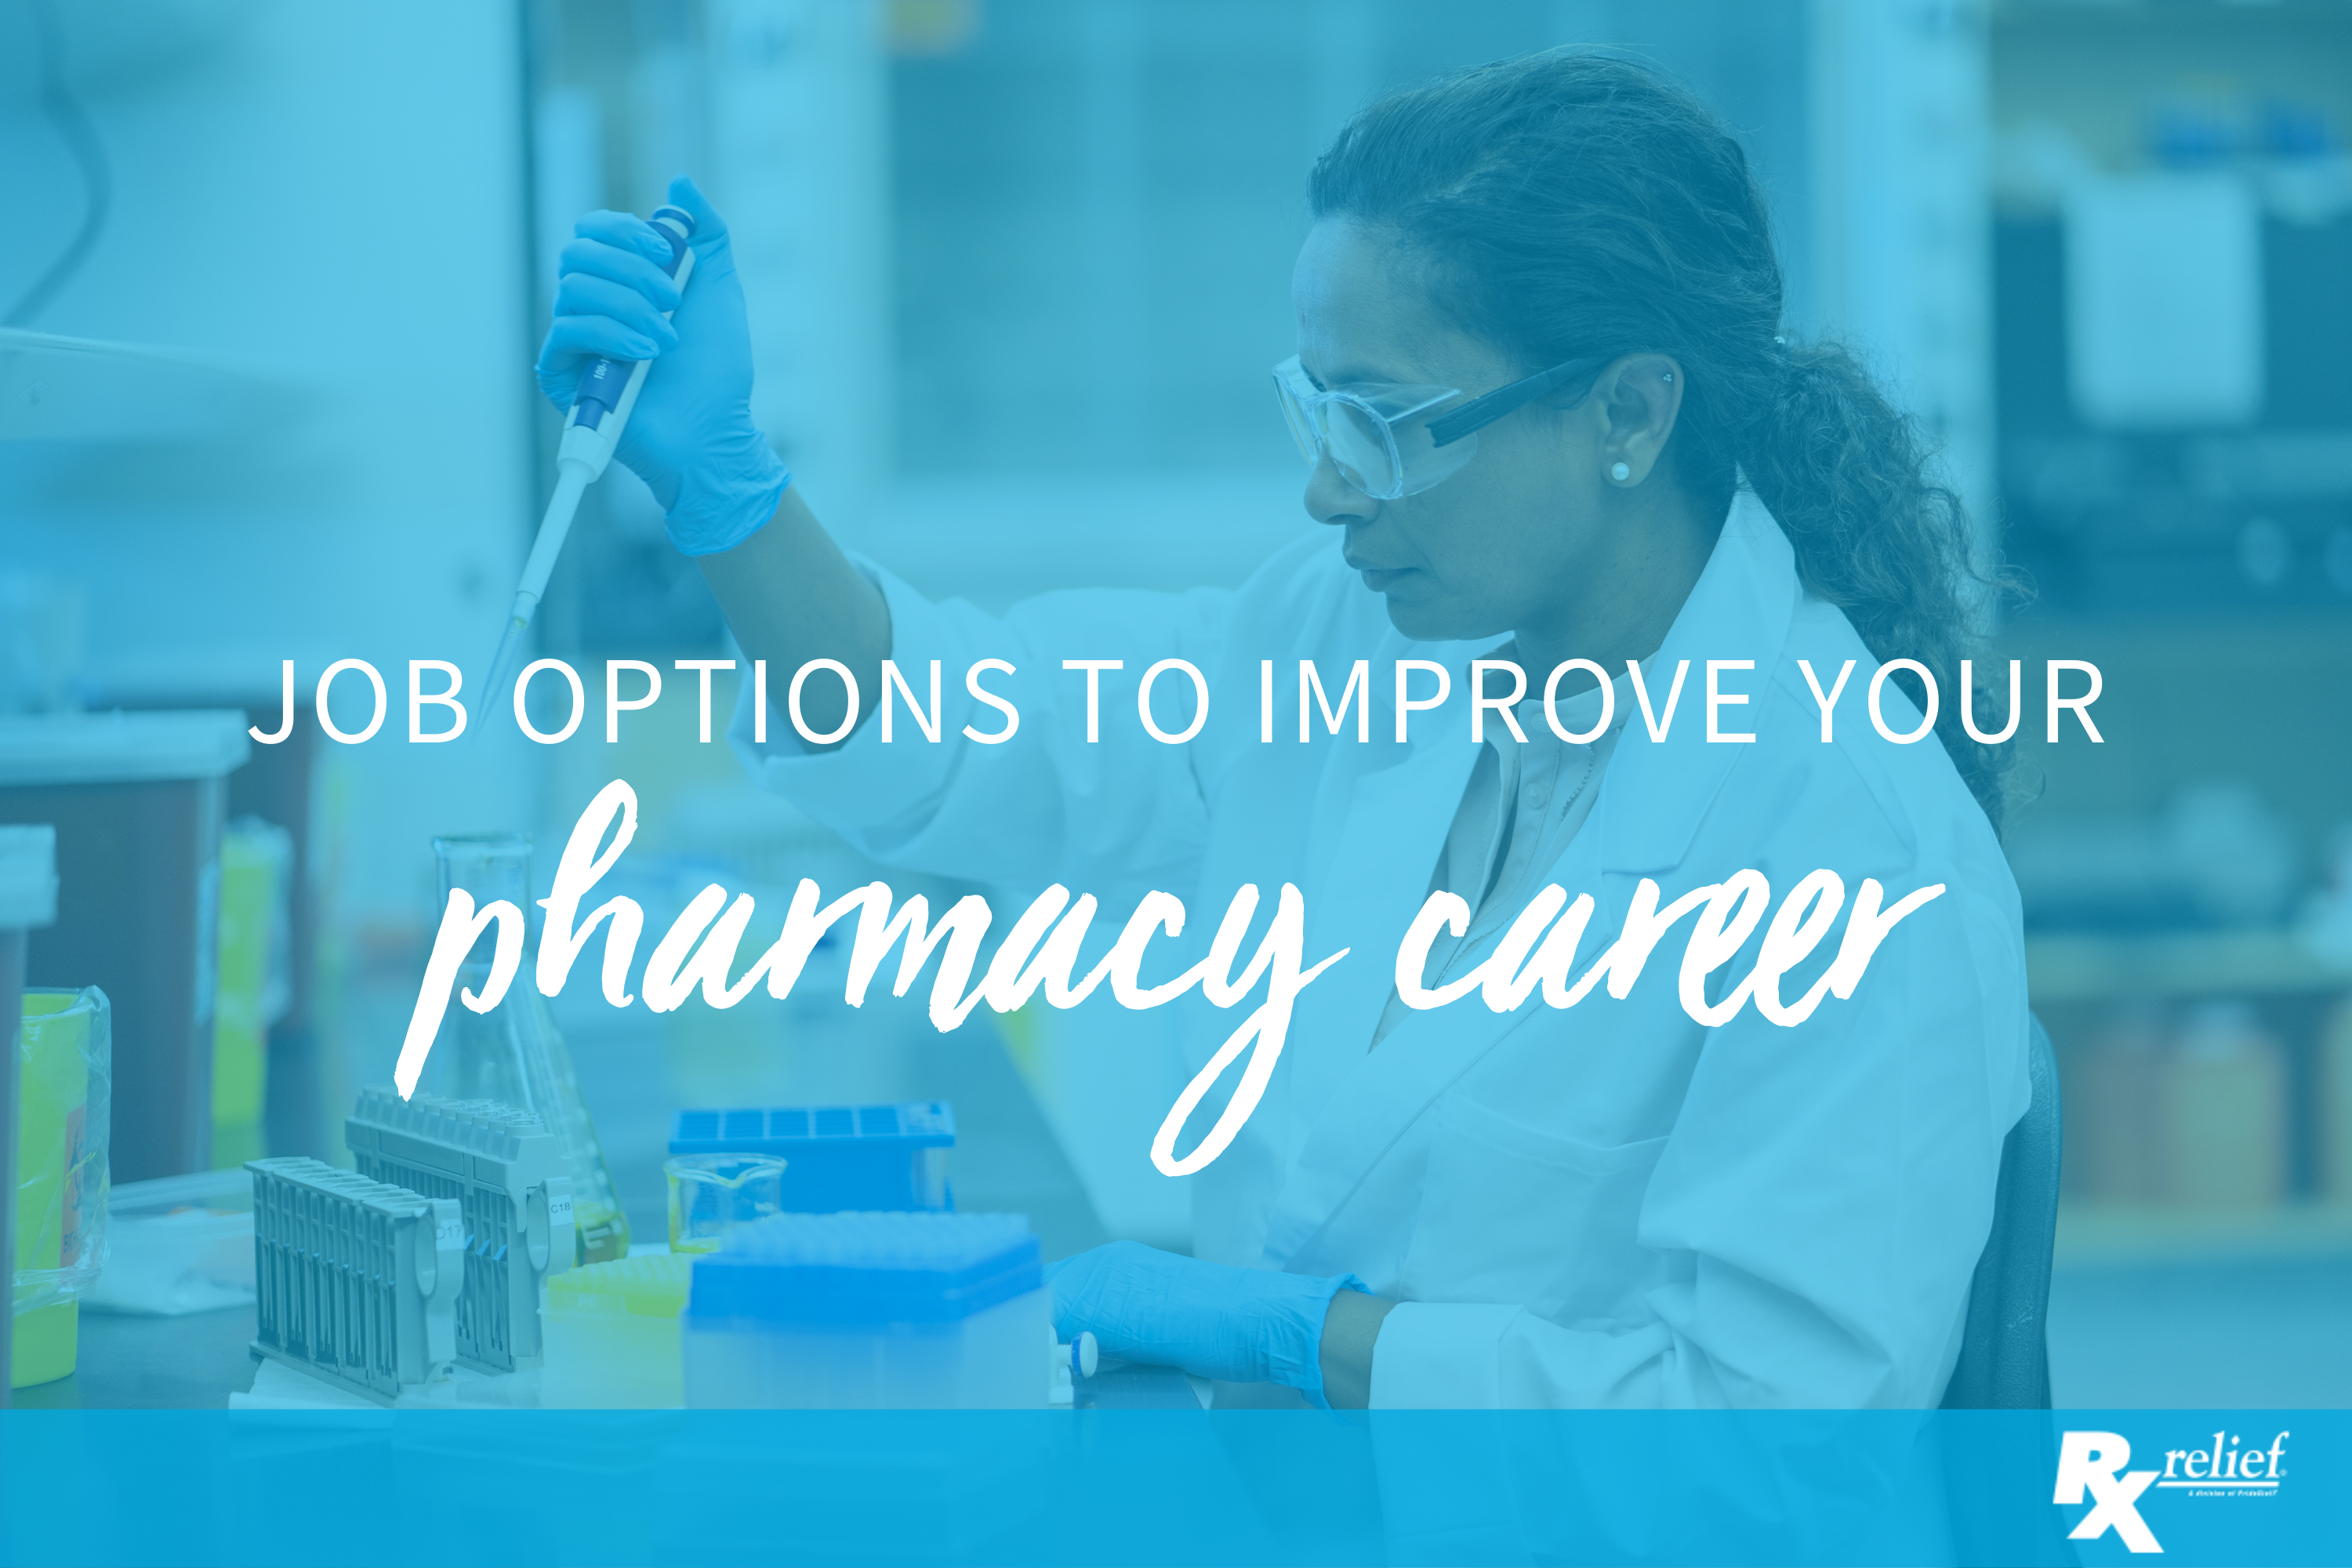 job options pharmacy caeer